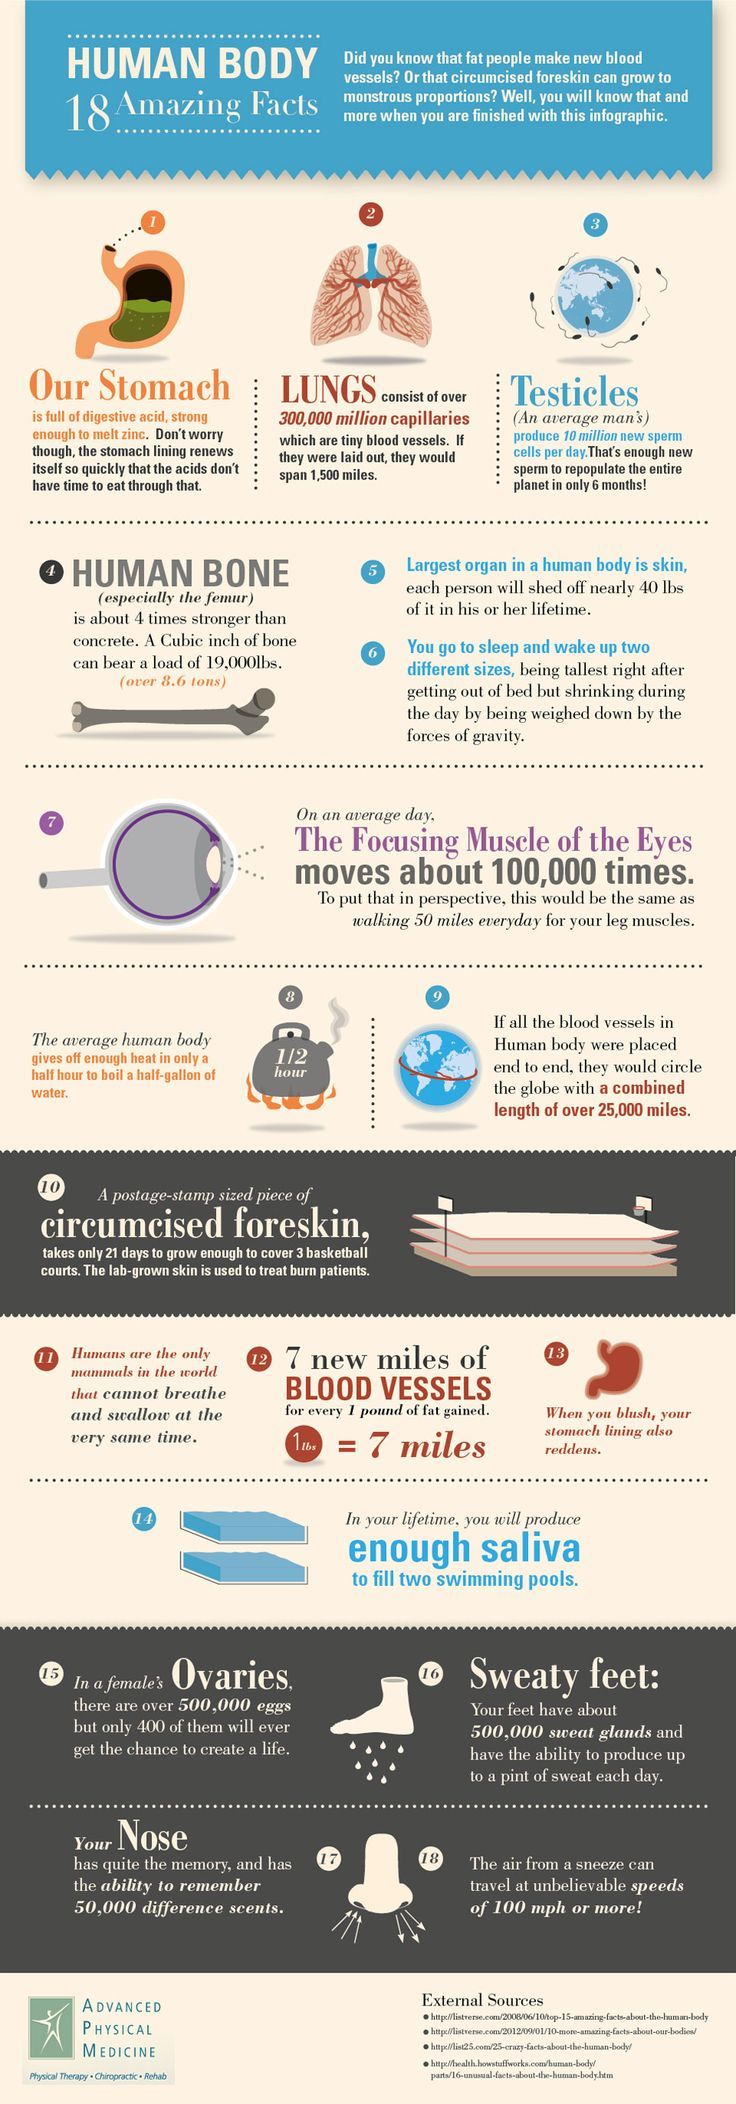 Human Body: 18 Amazing Facts[INFOGRAPHIC]